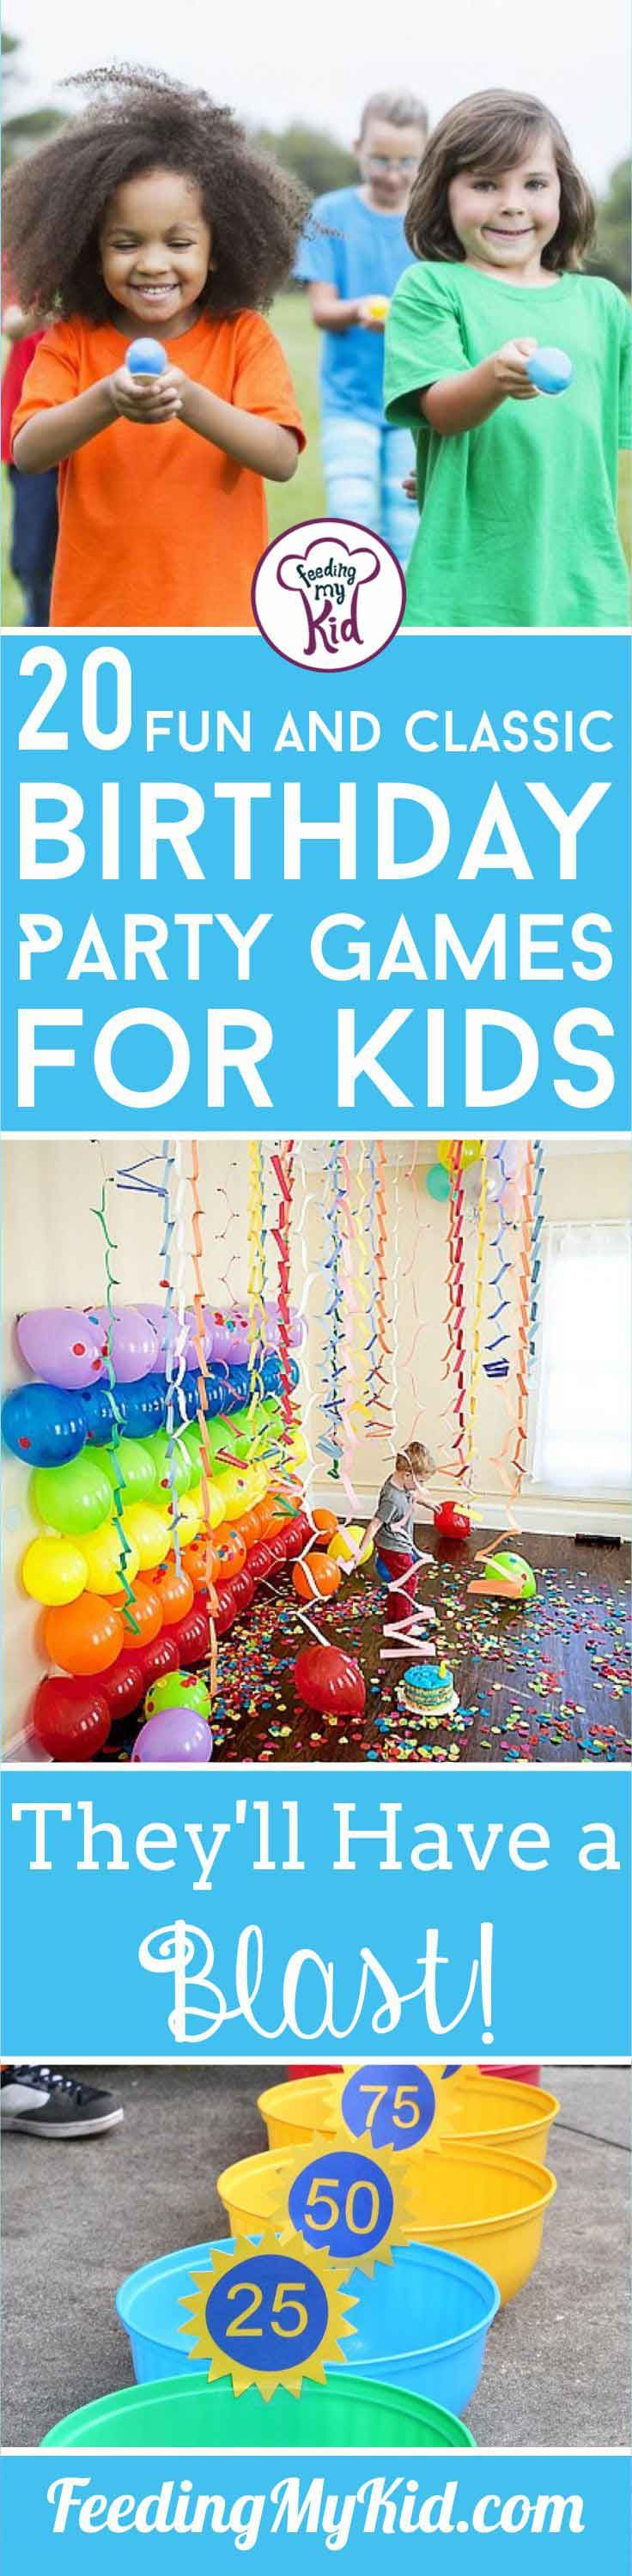 It can be stressful throwing a party for a bunch of kids. With these birthday party games, they won't be bored and you'll keep your sanity!